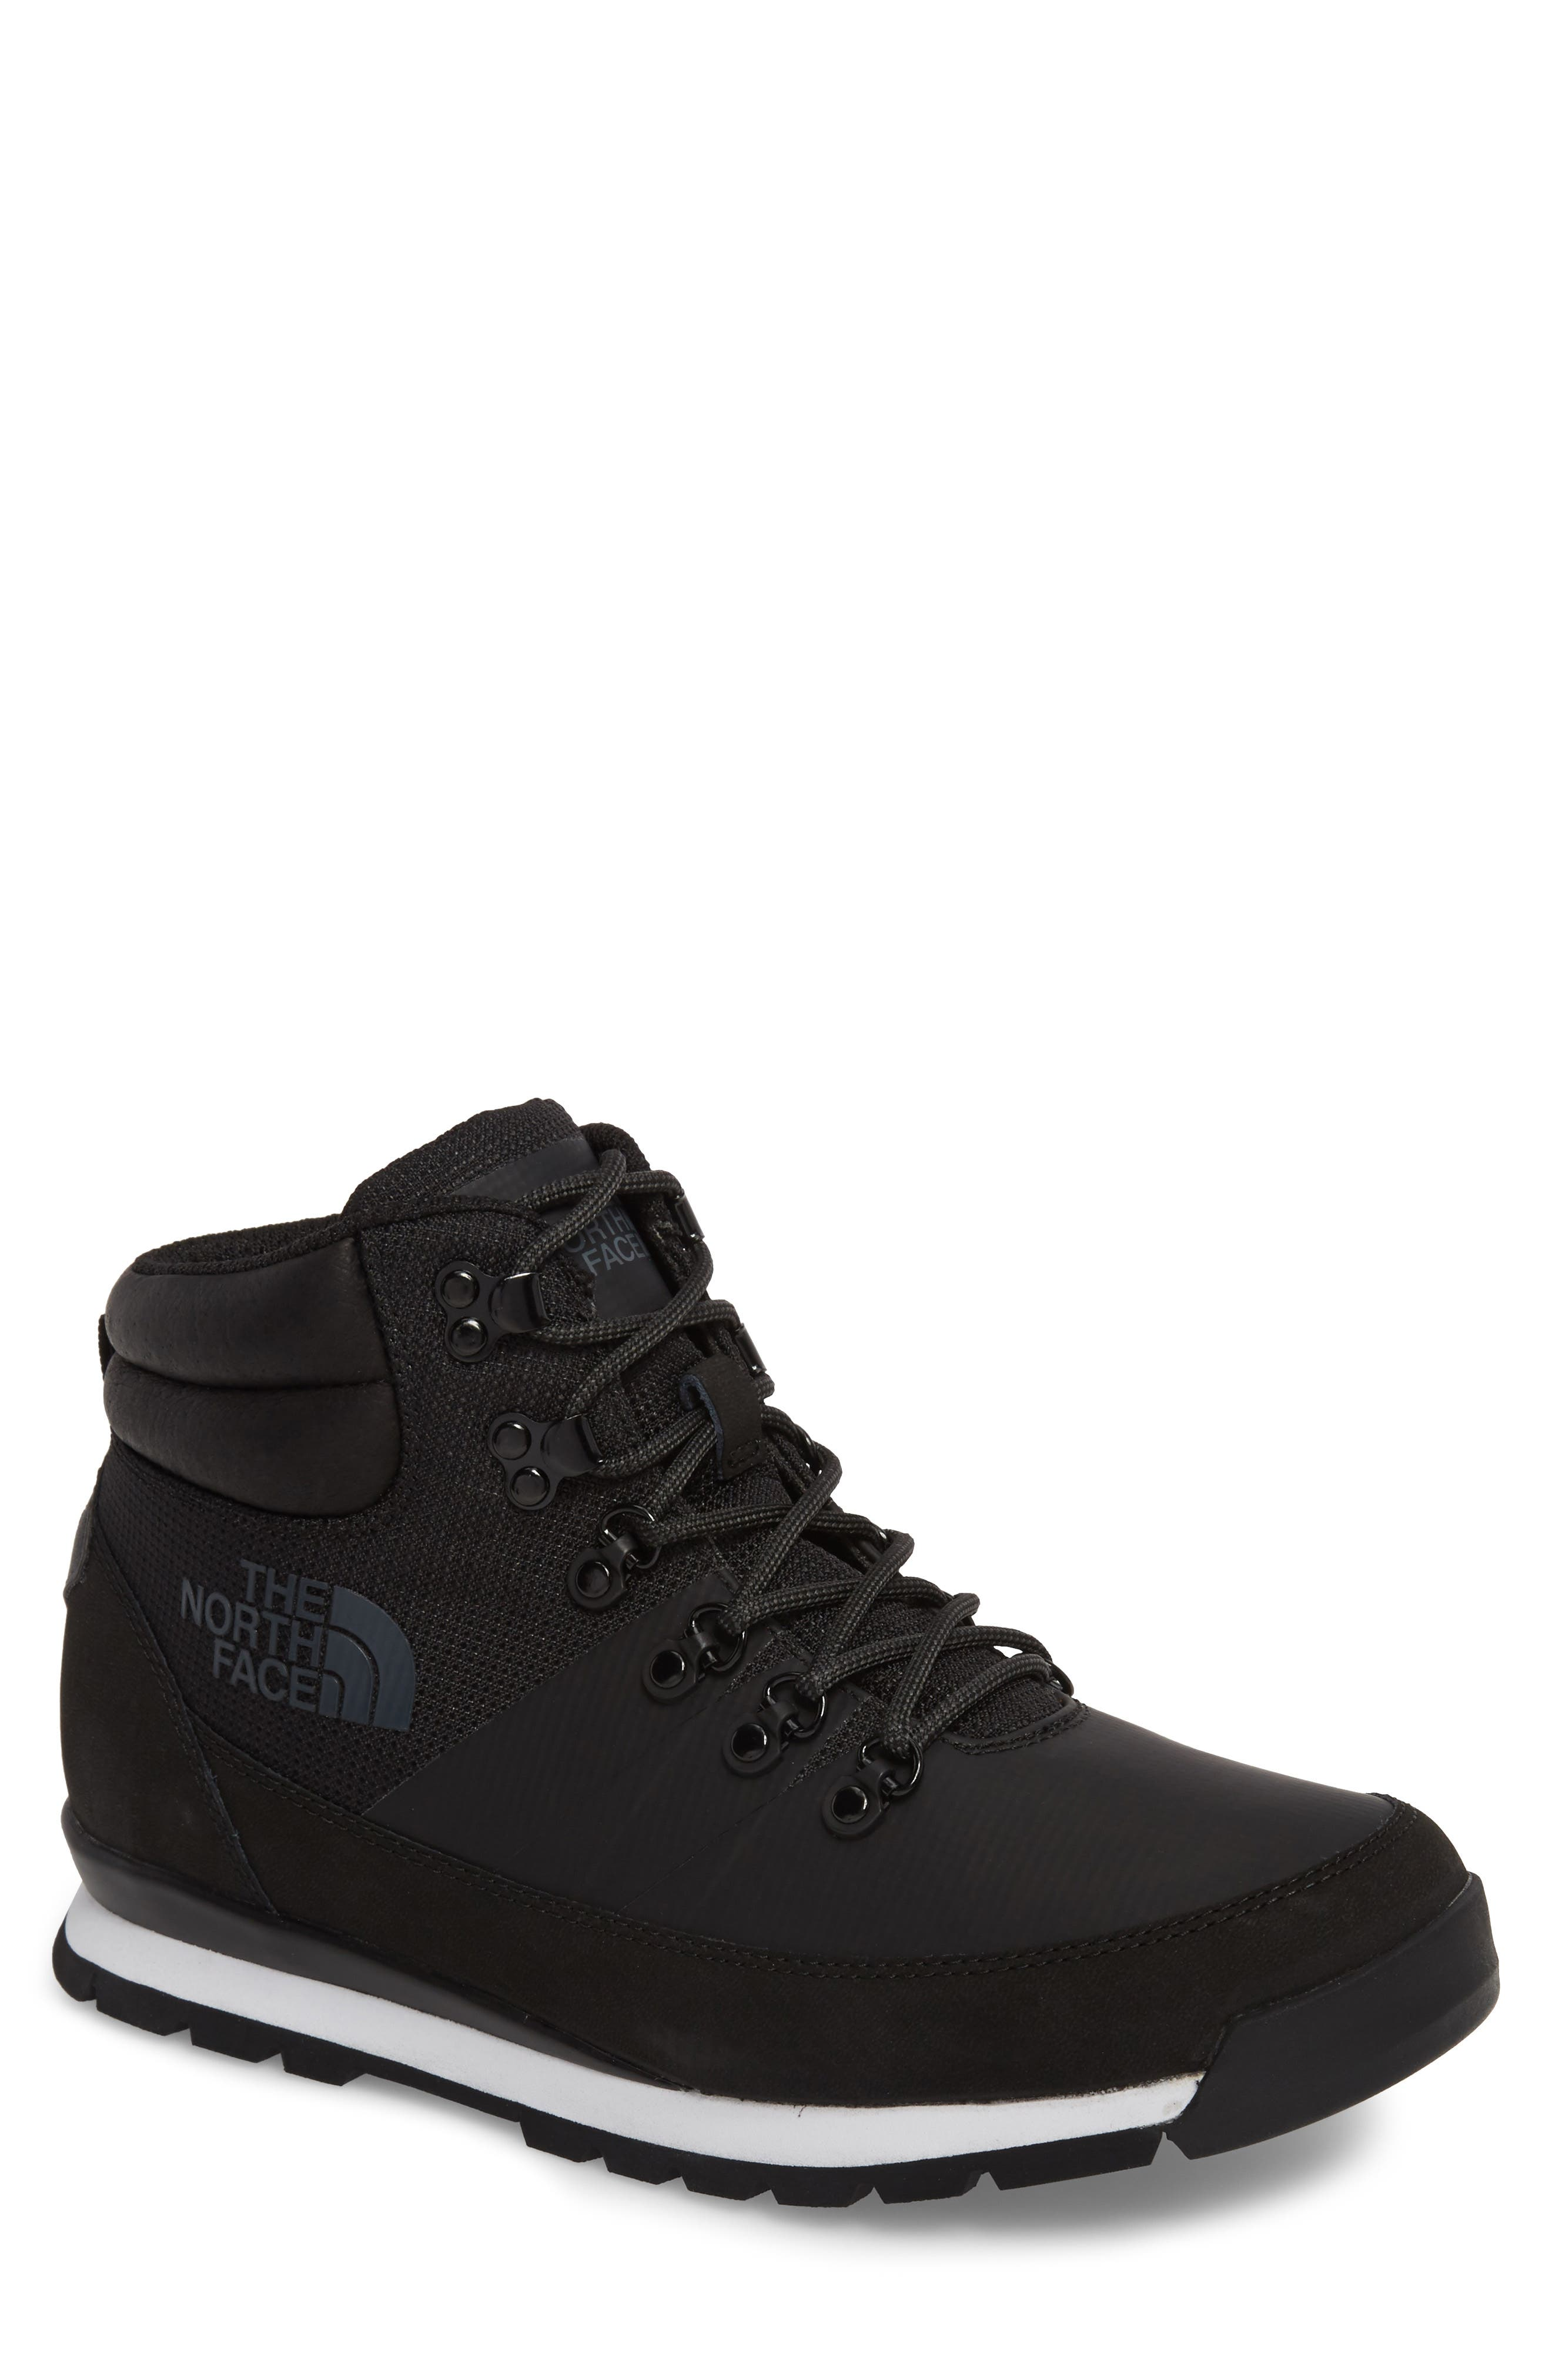 The North Face Back to Berkeley Mid AM Sneaker Boot (Men)